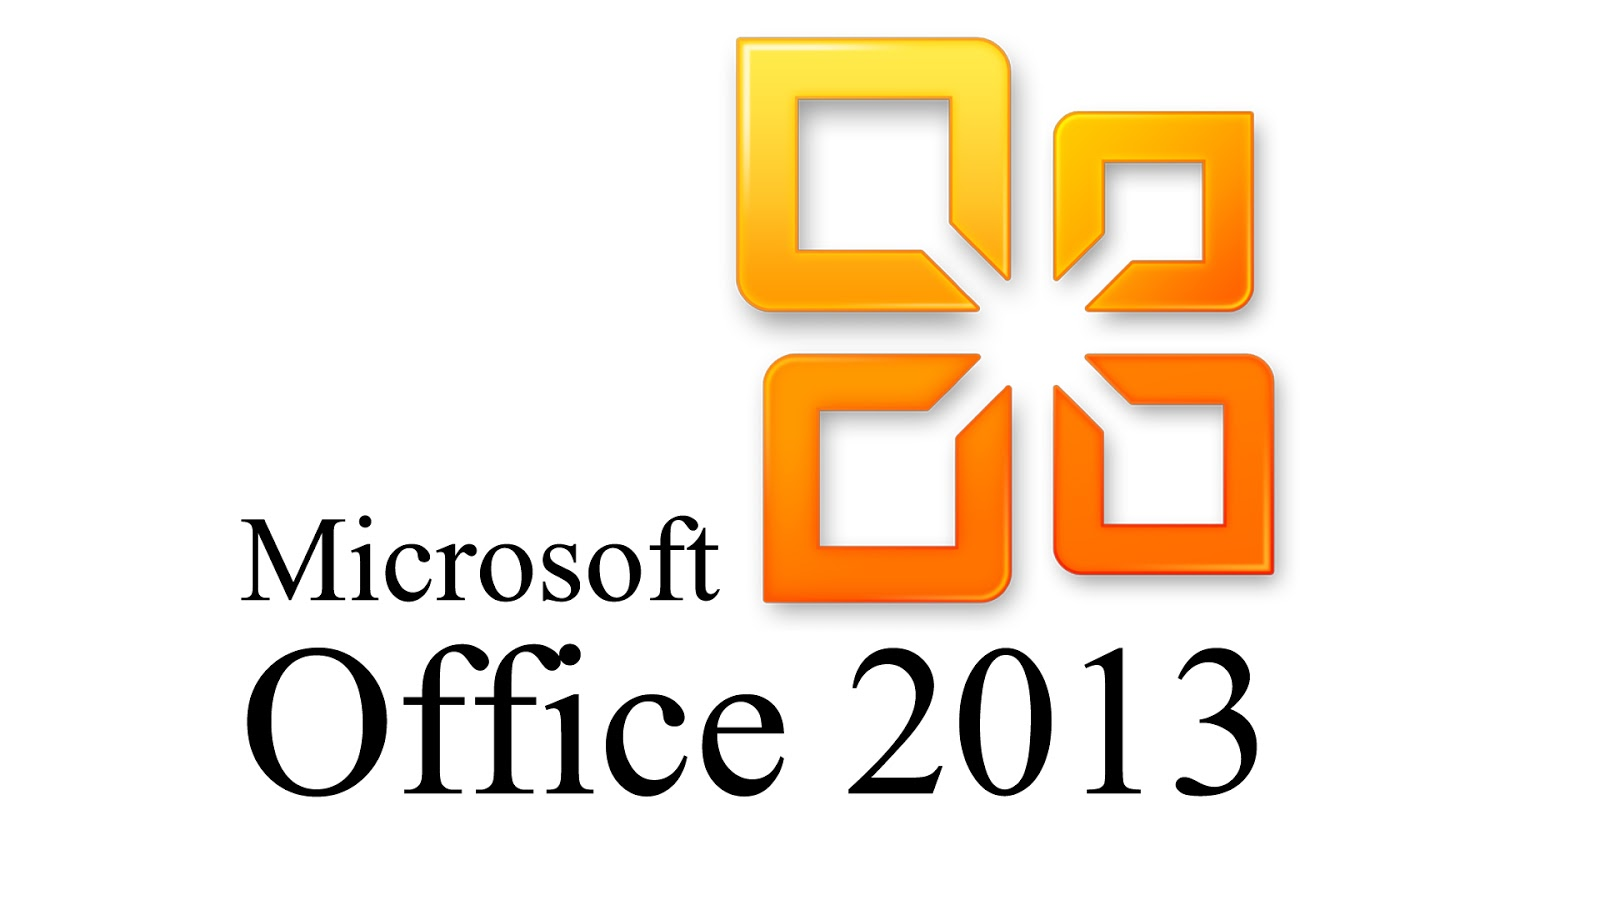 Telecharger Microsoft Office 365 Gratuit Microsoft Office 2013 Cracked Full Version Free Download